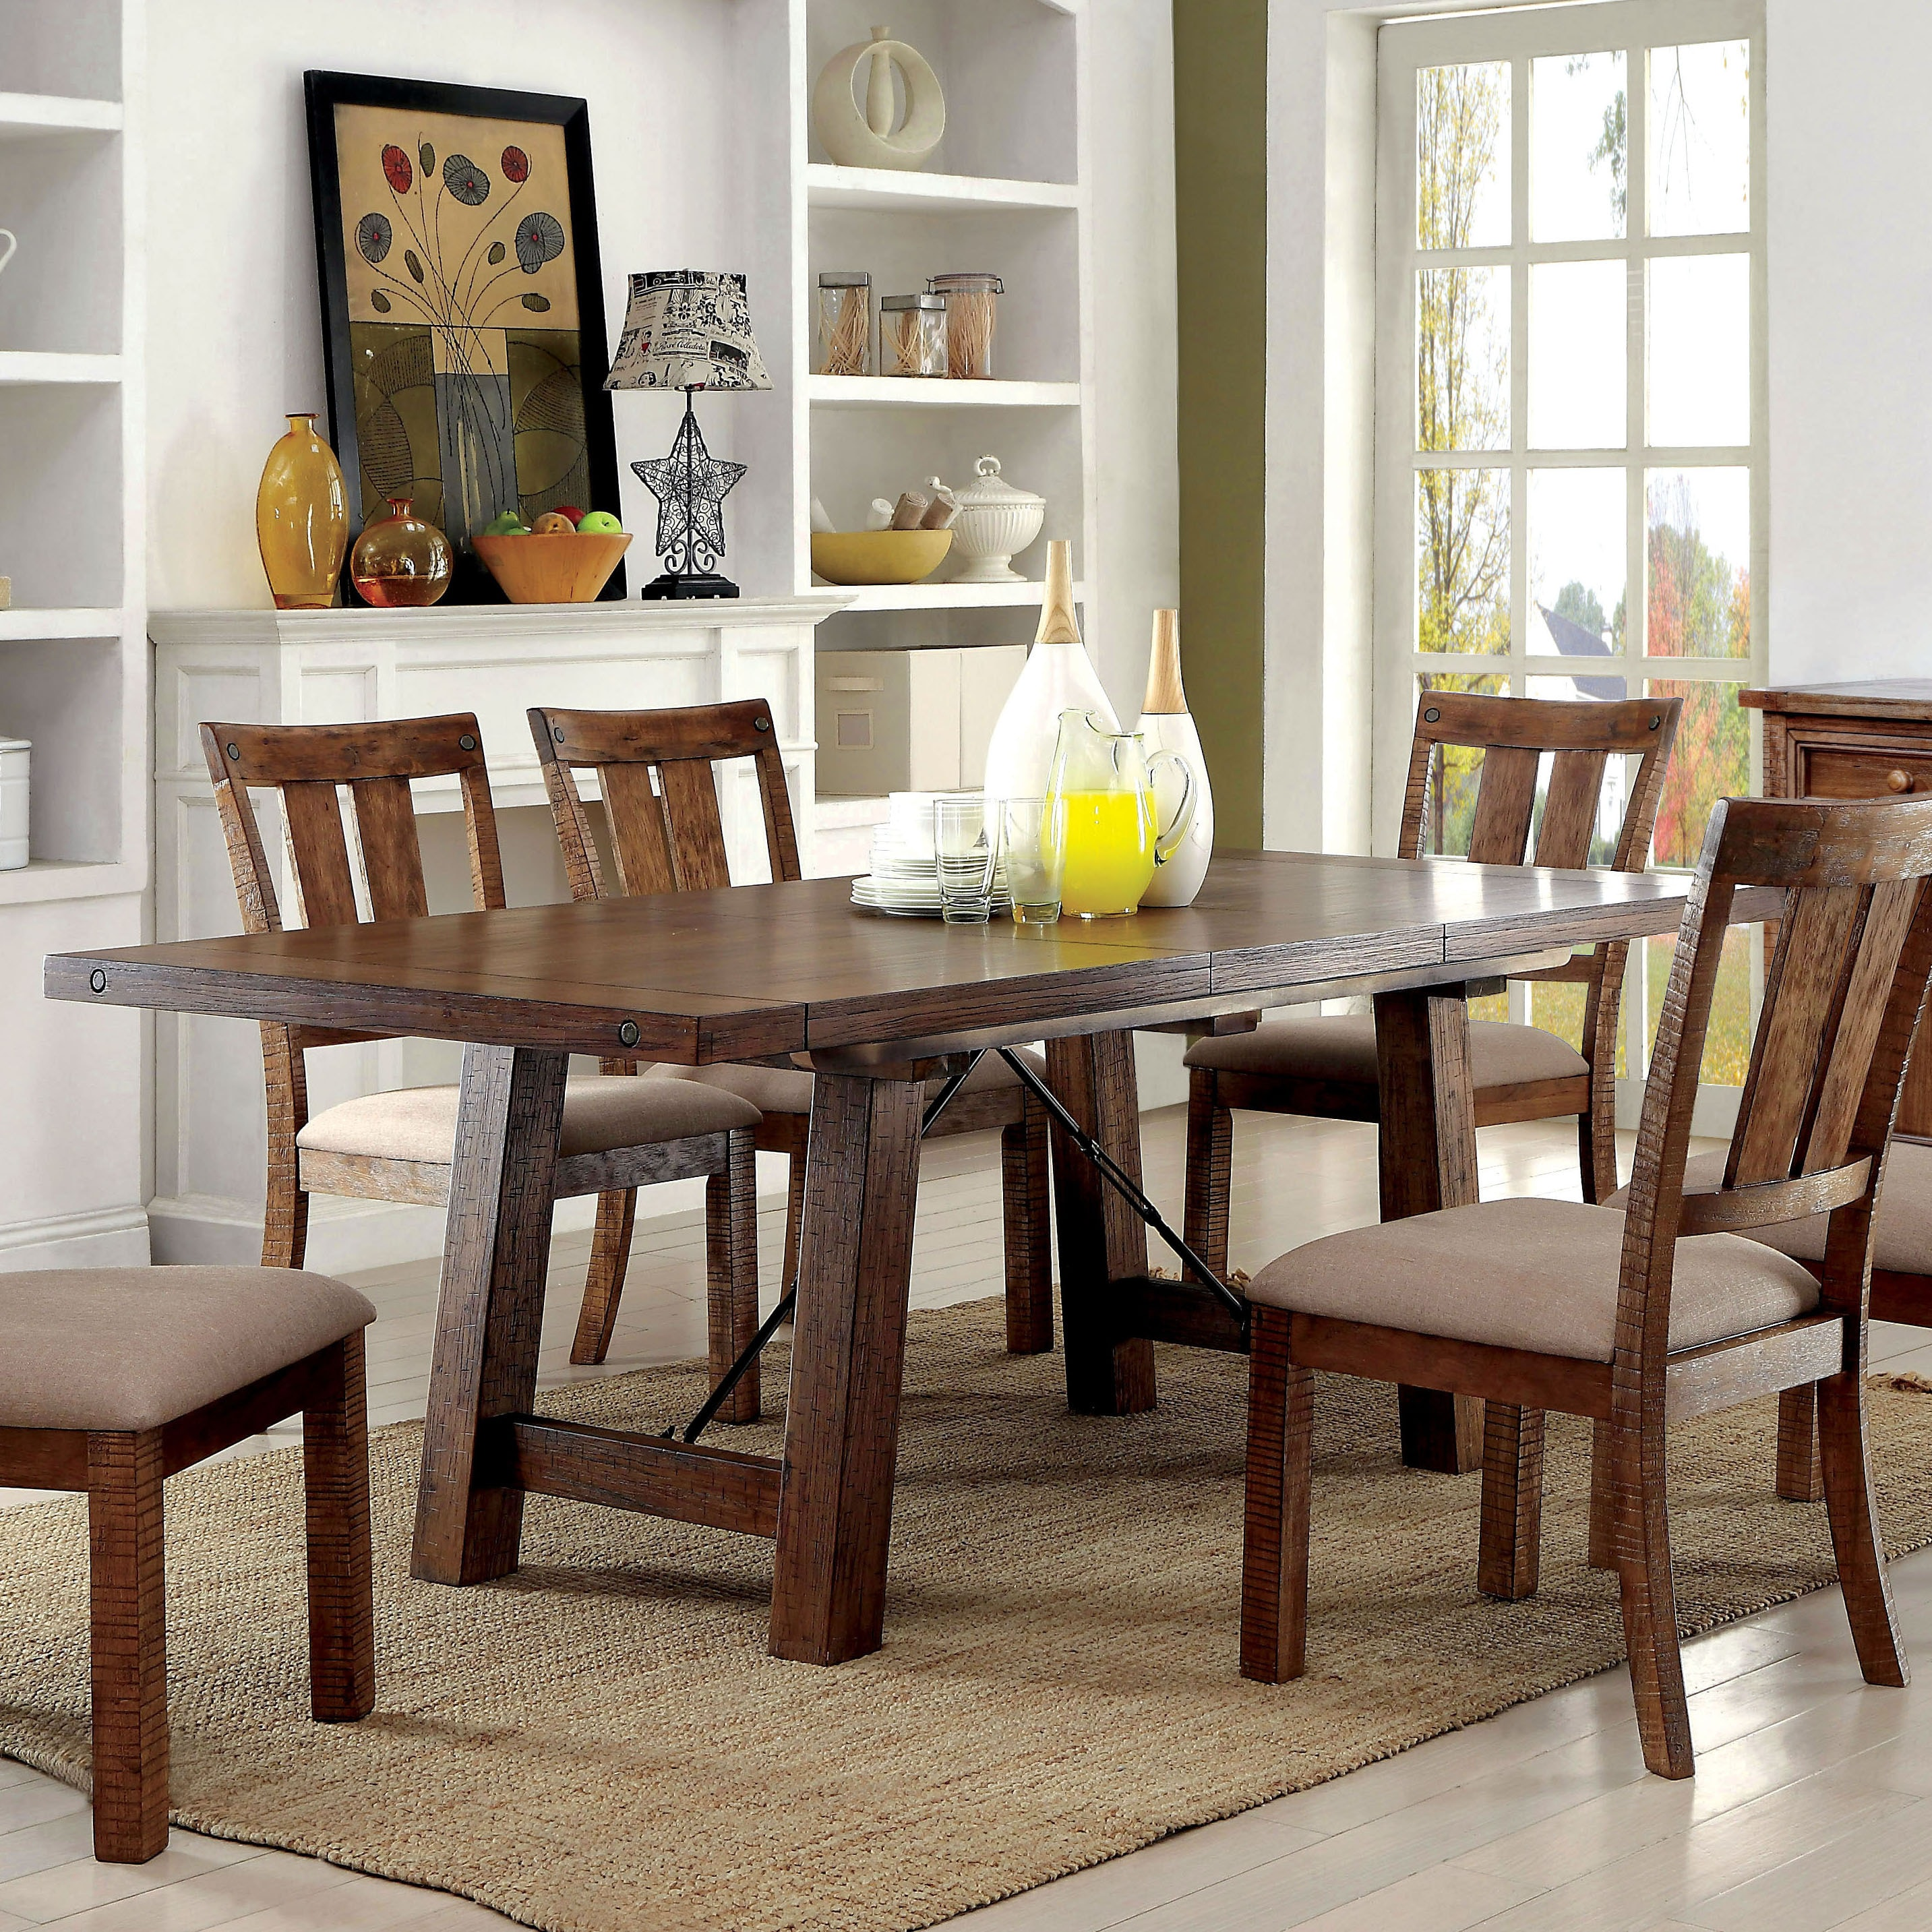 Shop Black Friday Deals On Furniture Of America Polson Country Style Medium Oak Dining Table With 18 Inch Leaf Overstock 11443608